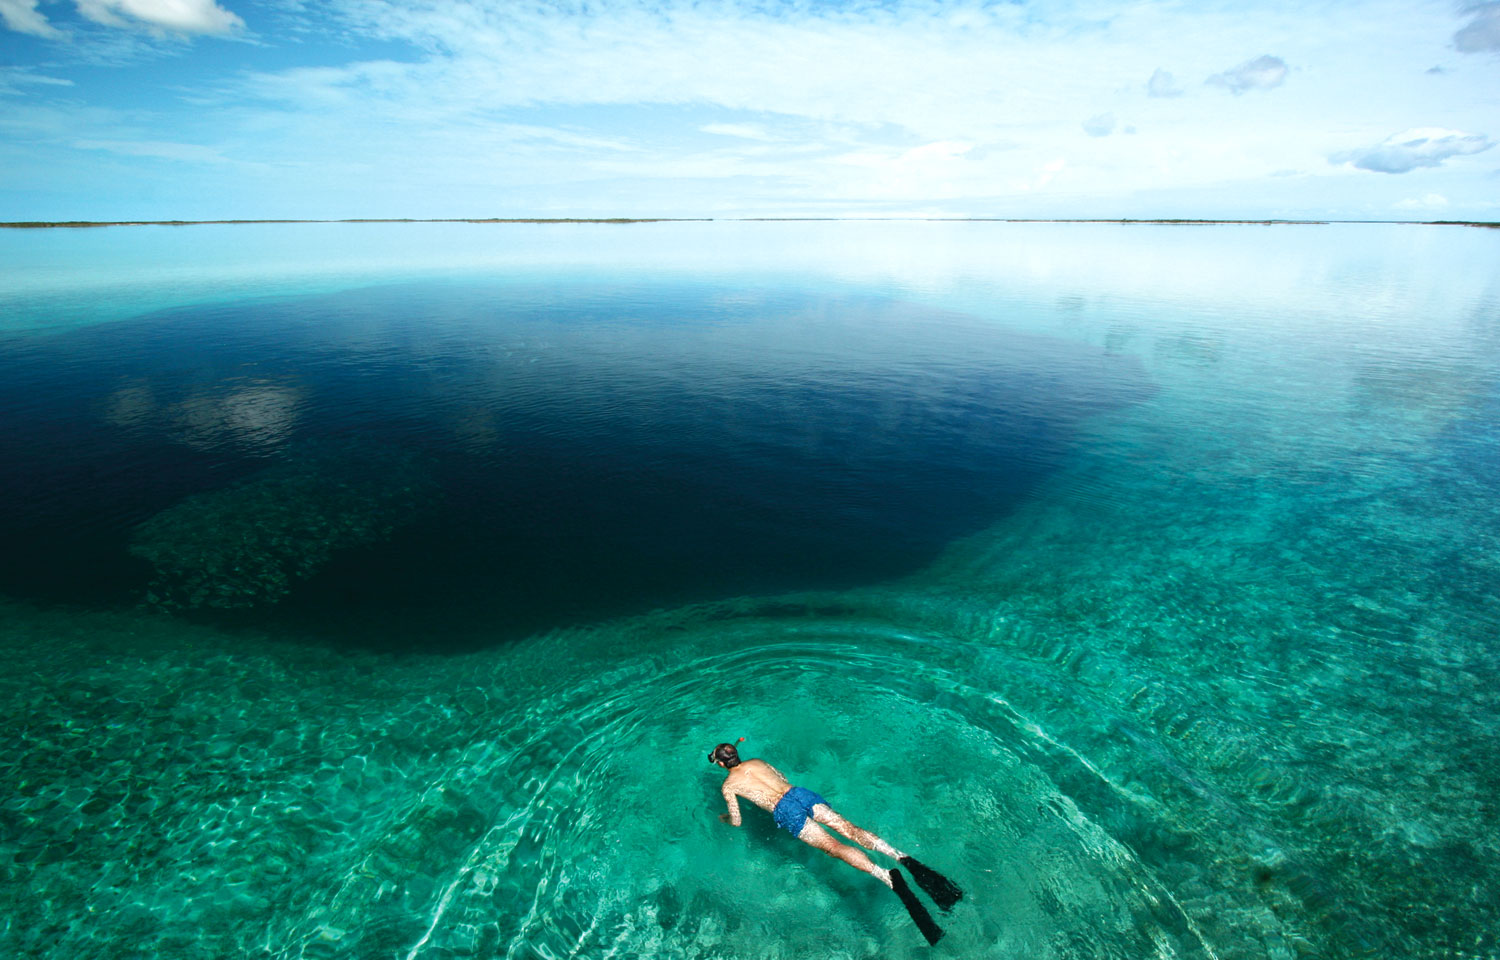 Snorkelling over one of the 110 ocean holes around Andros. Photograph by Brian O'Keefe